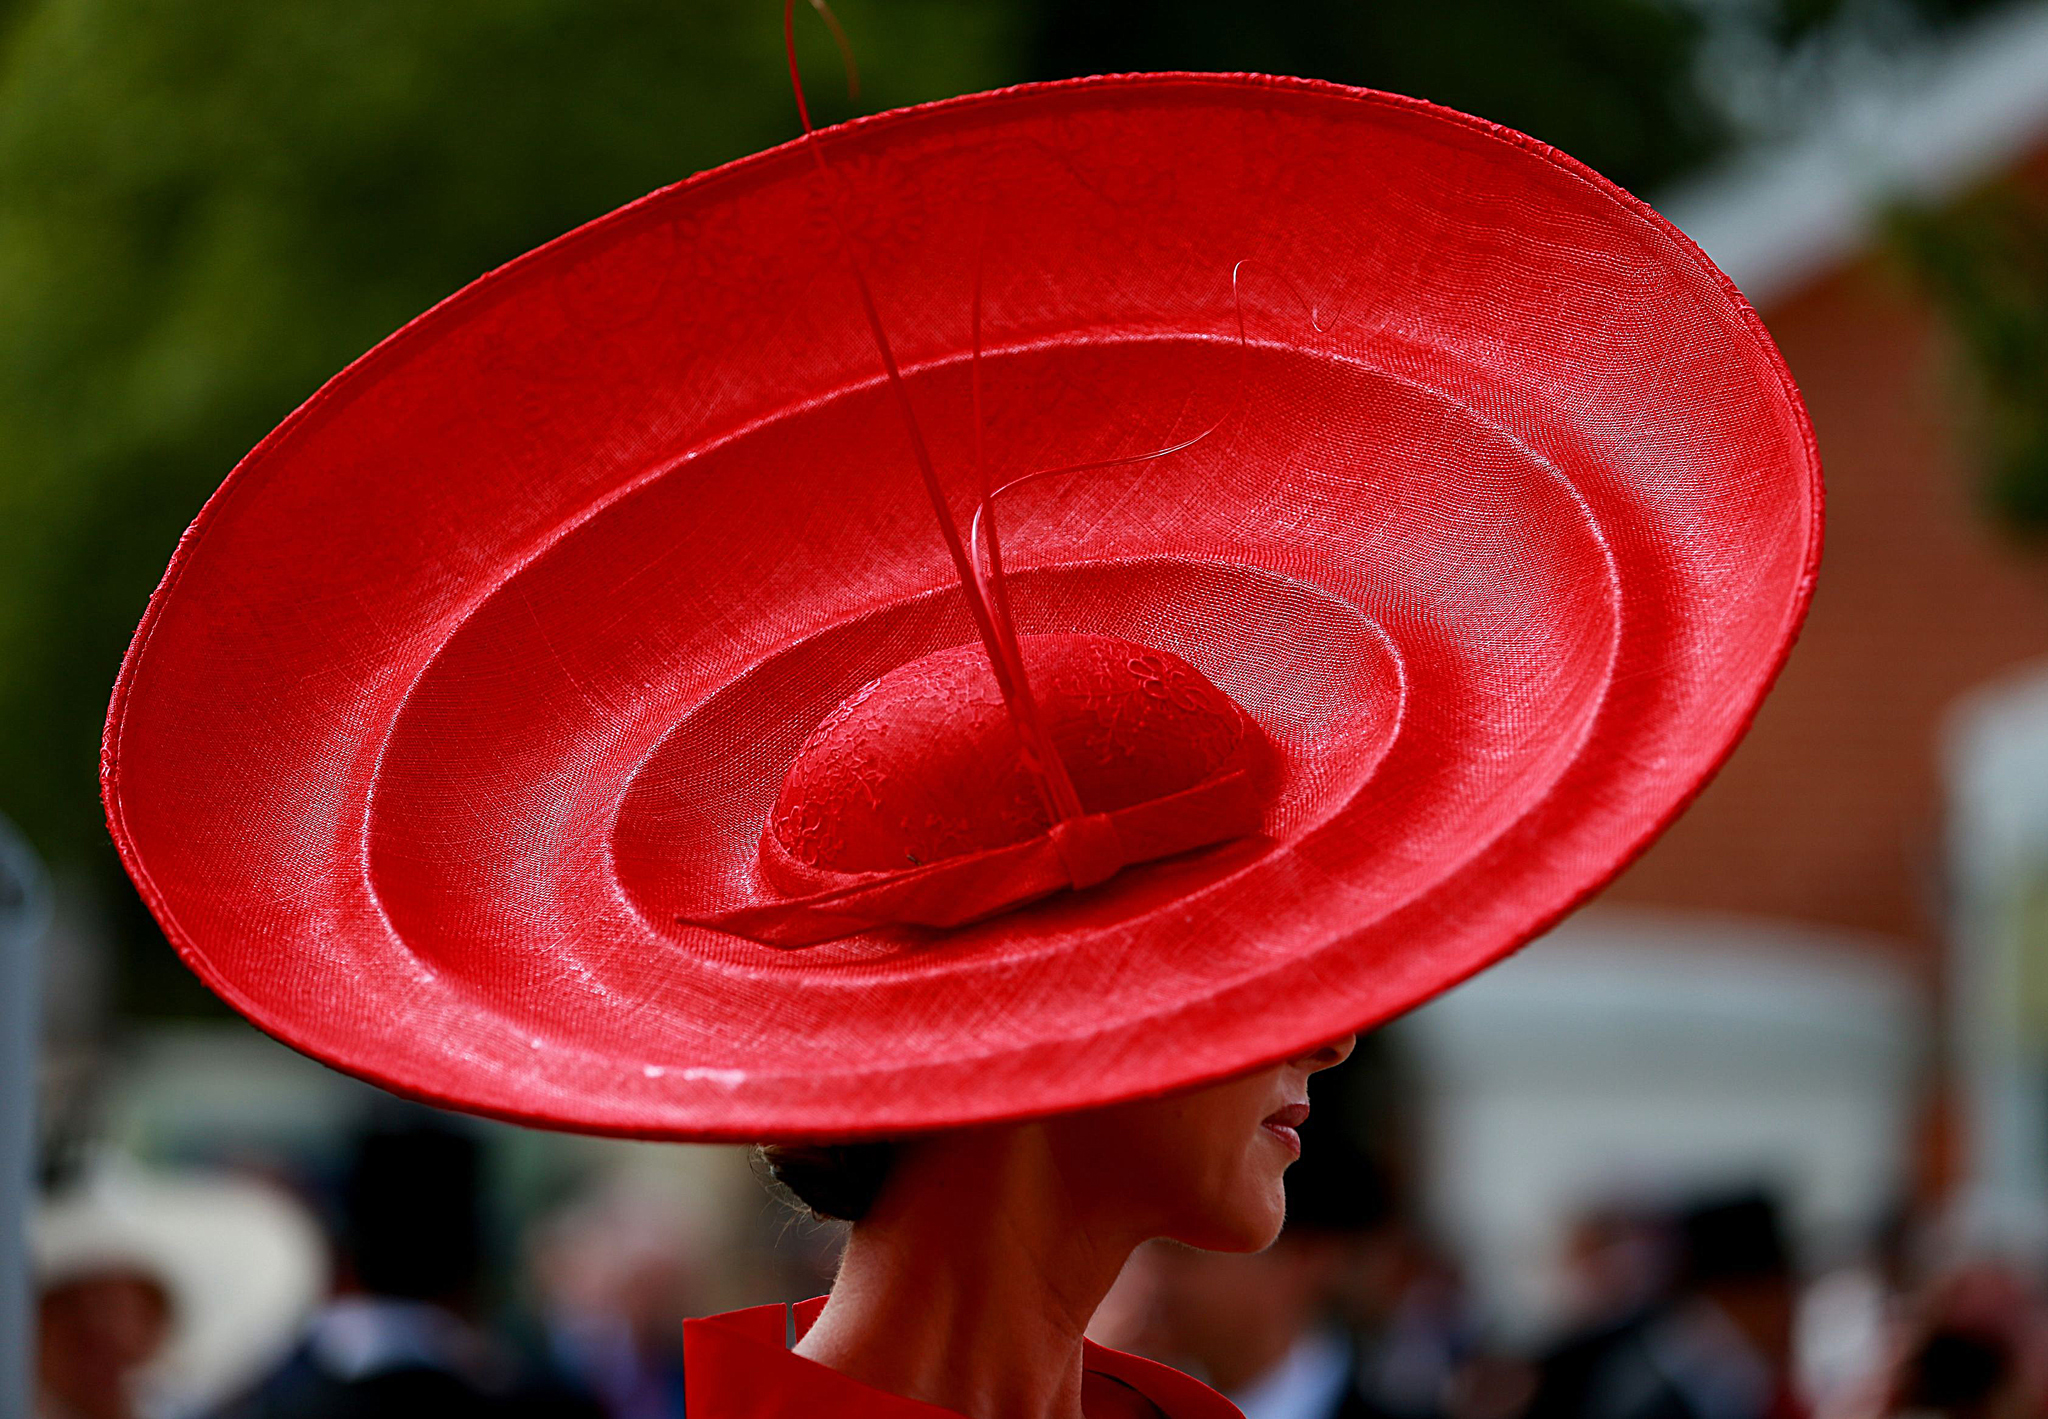 Horse Racing - The Royal Ascot Meeting 2014 - Day Two - Ascot Racecourse...Ladies hat fashions during Day Two of the 2014 Royal Ascot Meeting at Ascot Racecourse, Berkshire. PRESS ASSOCIATION Photo. Picture date: Wednesday June 18, 2014. See PA story RACING Ascot. Photo credit should read: David Davies/PA Wire